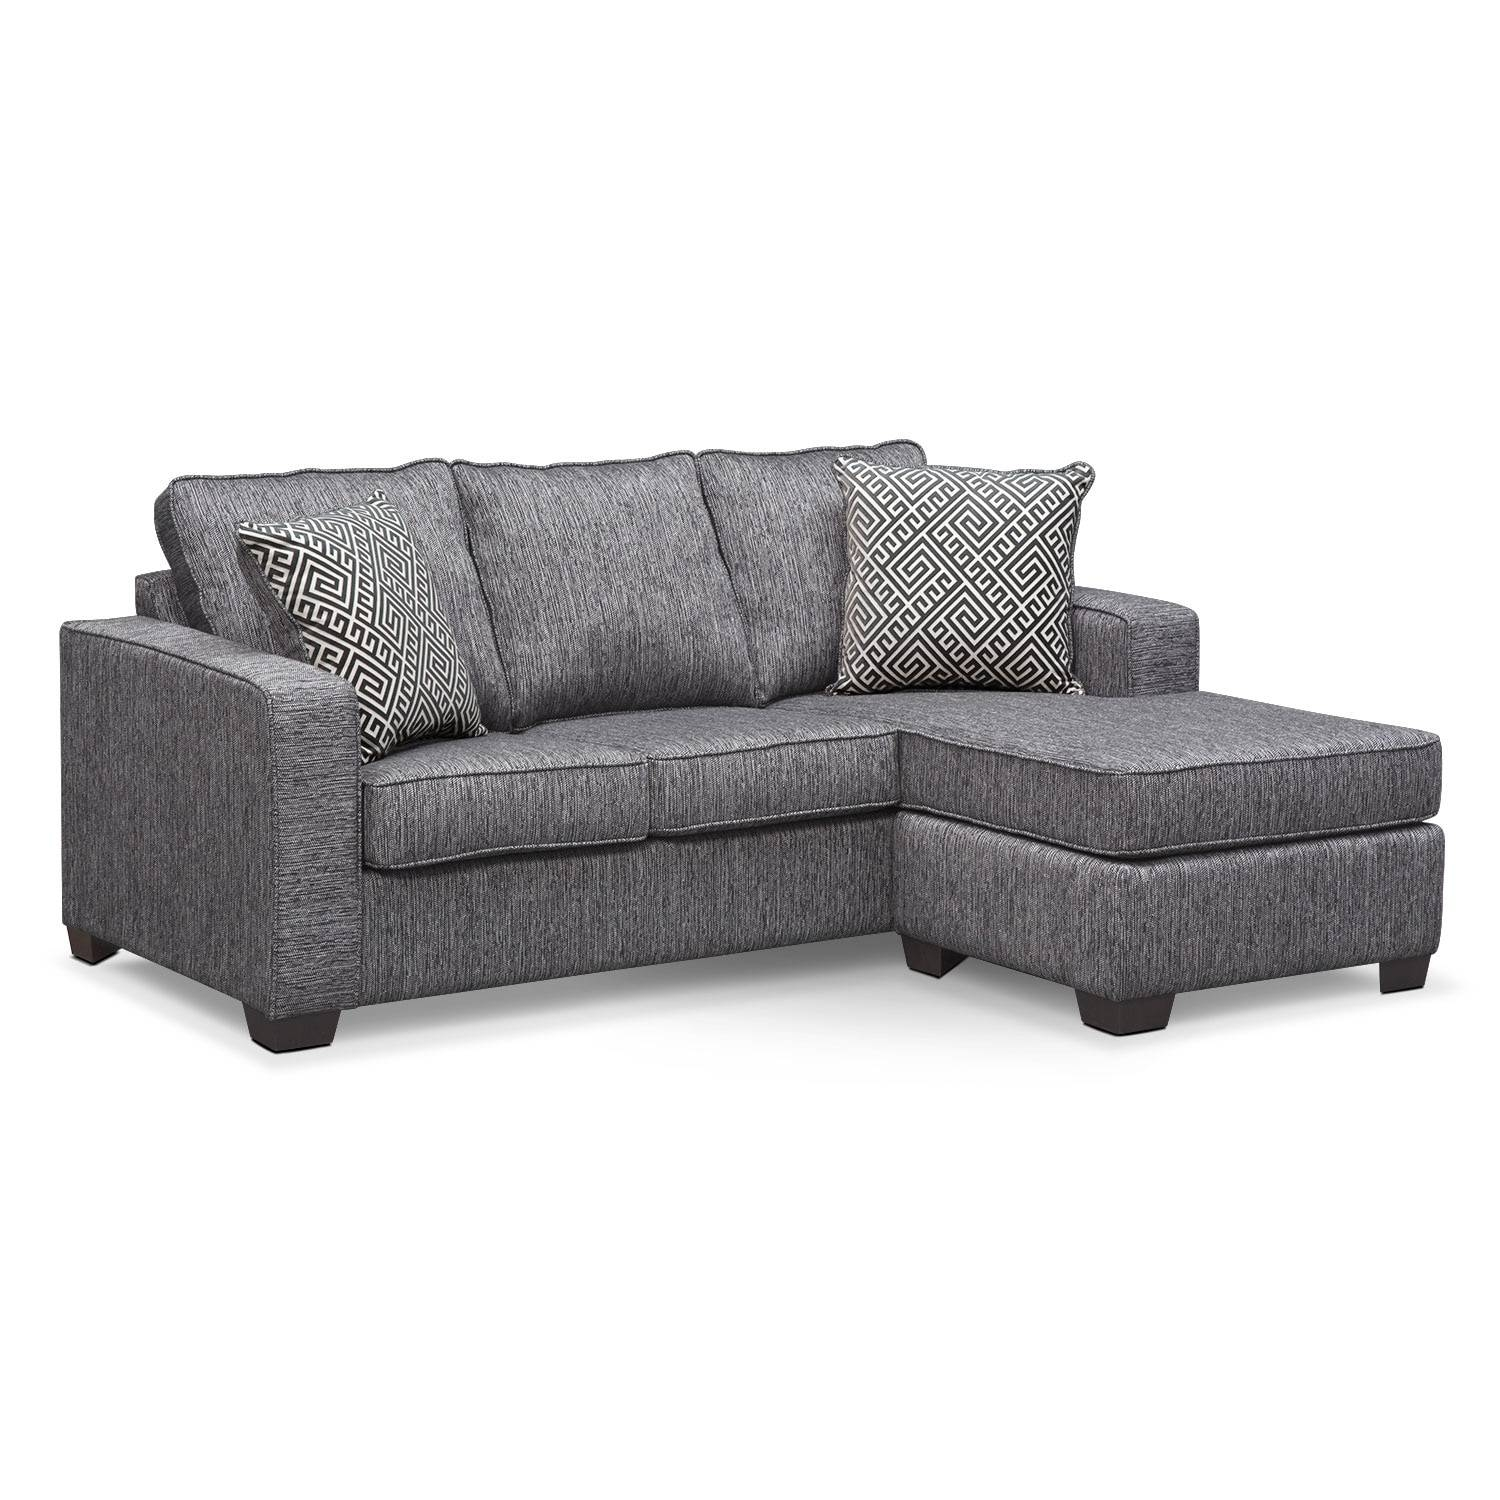 Sleeper Sofas | Value City Furniture | Value City Furniture regarding Sofas With Chaise Longue (Image 22 of 30)